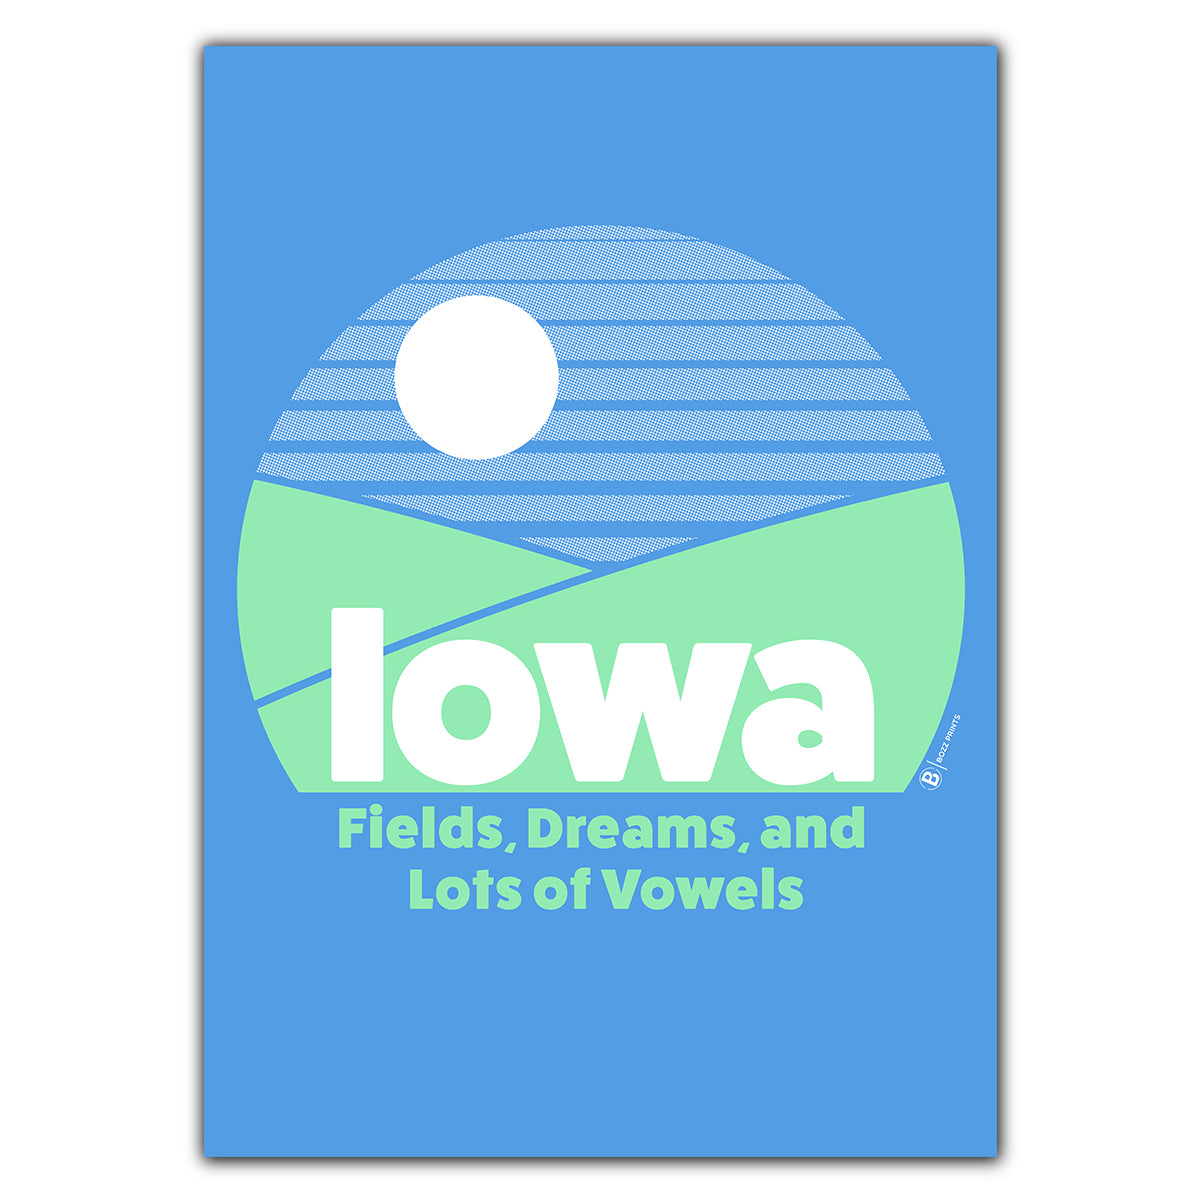 Iowa Fields, Dreams, and Lot of Vowels Greeting Card